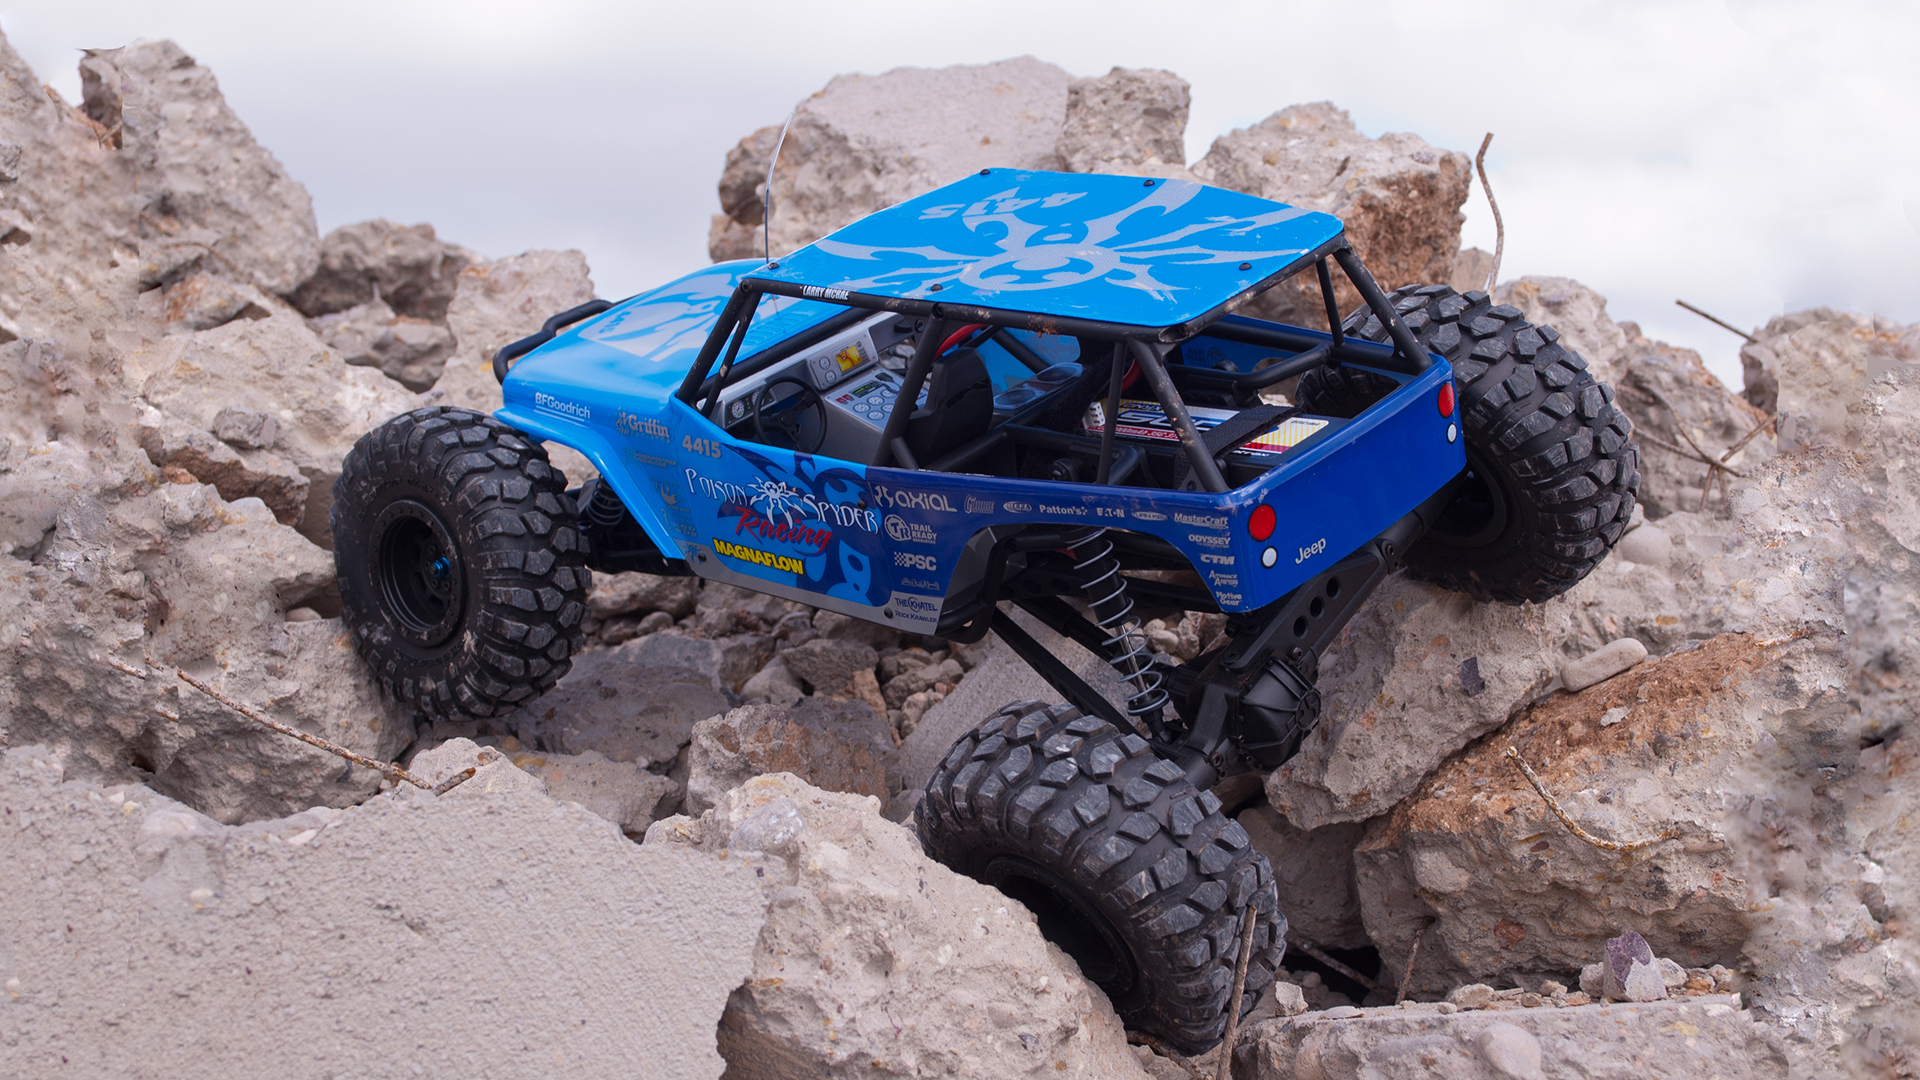 rc remote control cars with 467579 How Get Hobby Rc Driving Rock Crawlers on 47d Engine 132 Trumpeter P 20308 also Cheap Rc Cars For Sale also Elegoo Uno Project Upgraded Smart Robot Car Kit V2 0 furthermore Traxxas  s Up The X Maxx For 8s Lipo Power additionally Product large.